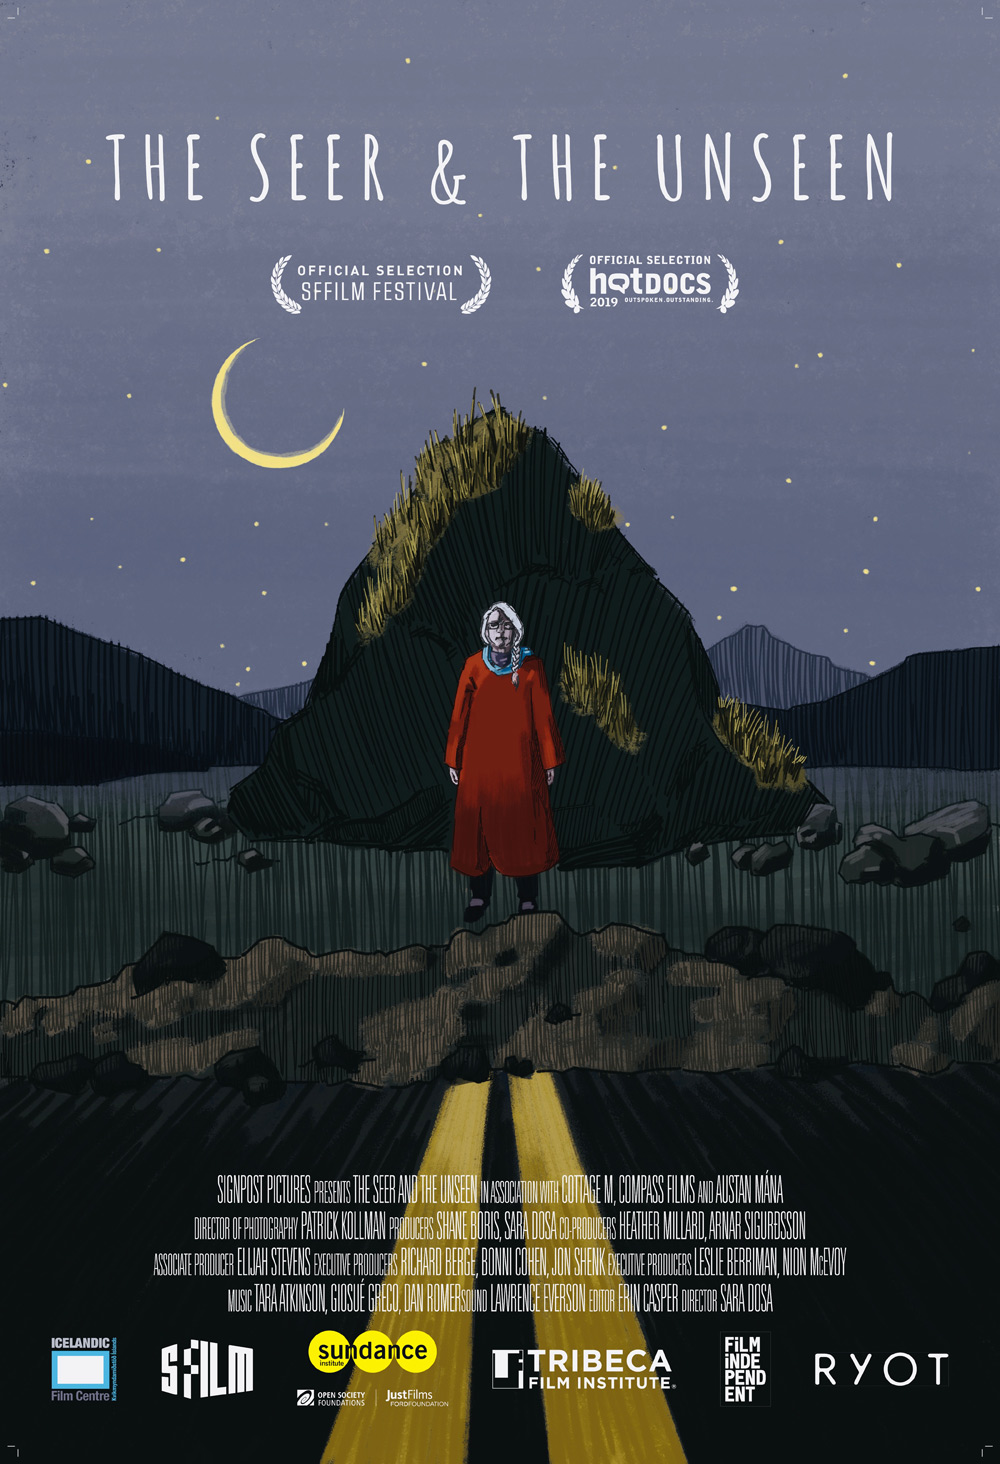 The Seer and the Invisible Poster